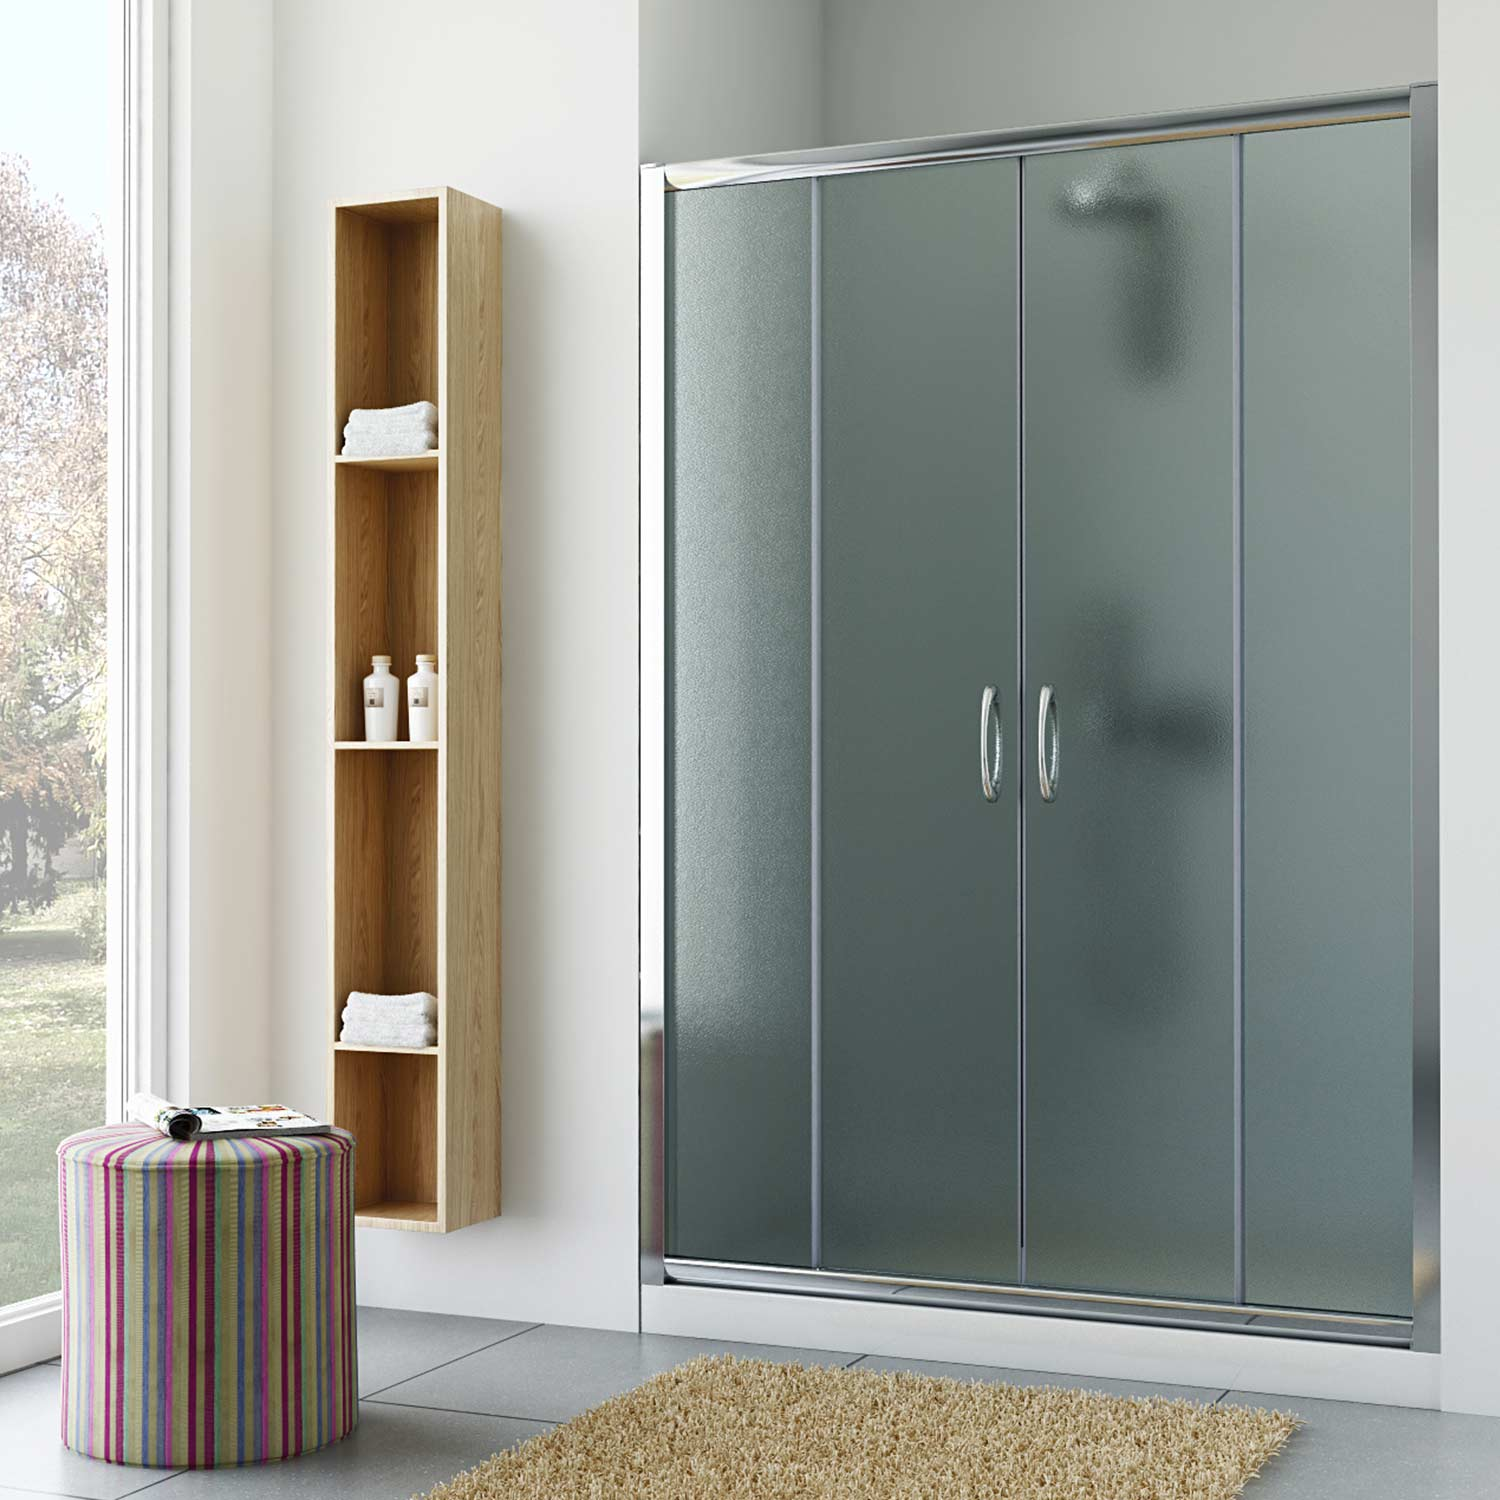 Walk in shower sliding double door enclosure clear for 1300 mm sliding shower door